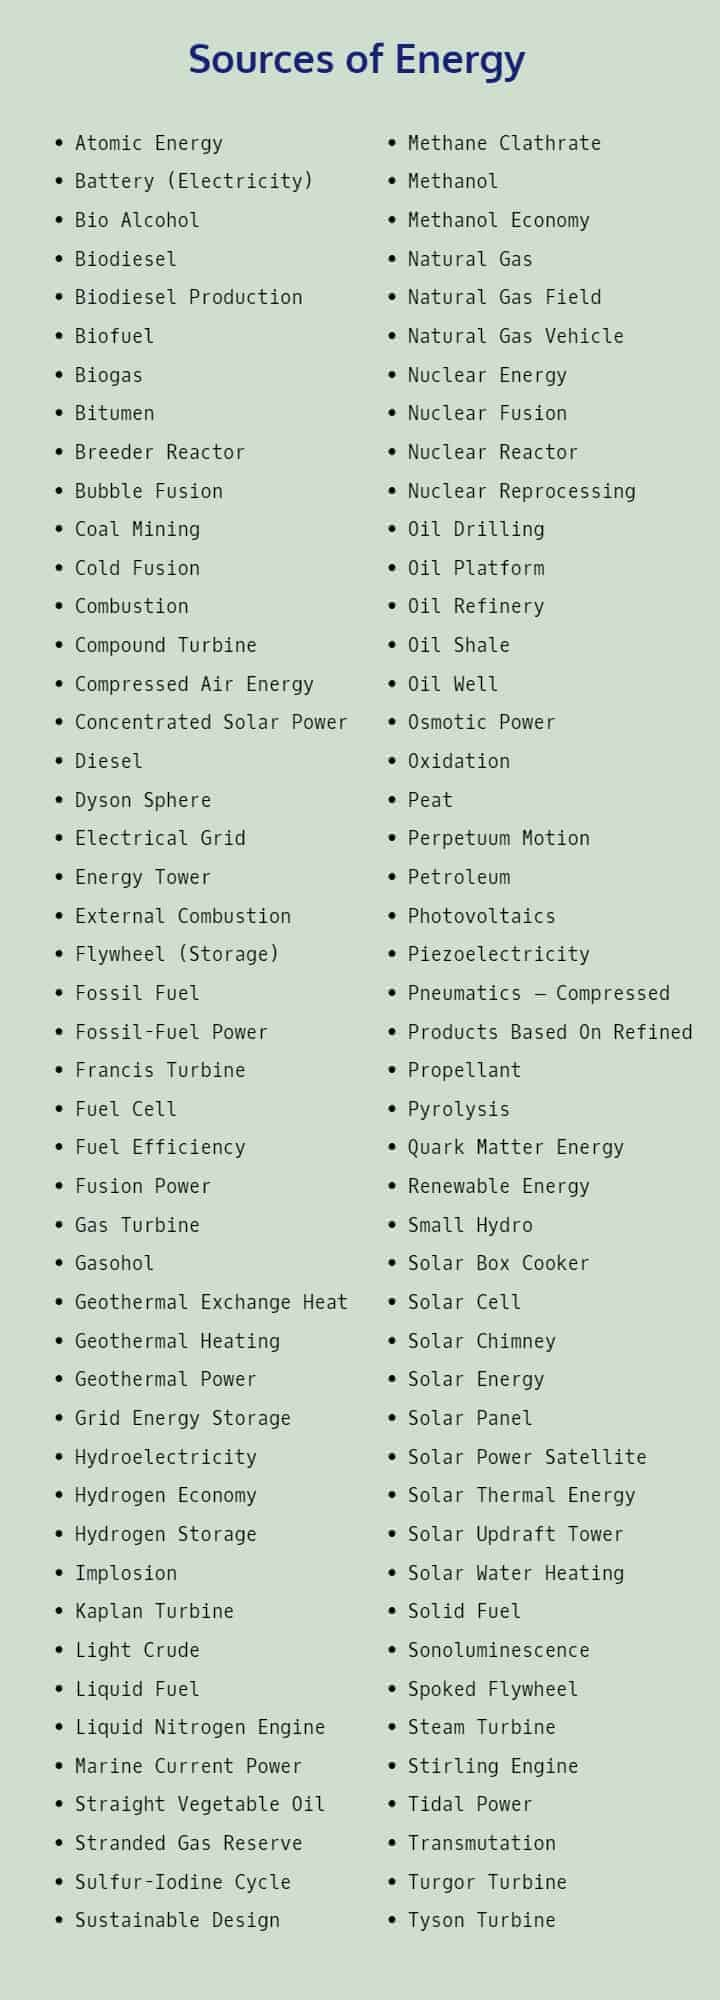 The best sources of energy